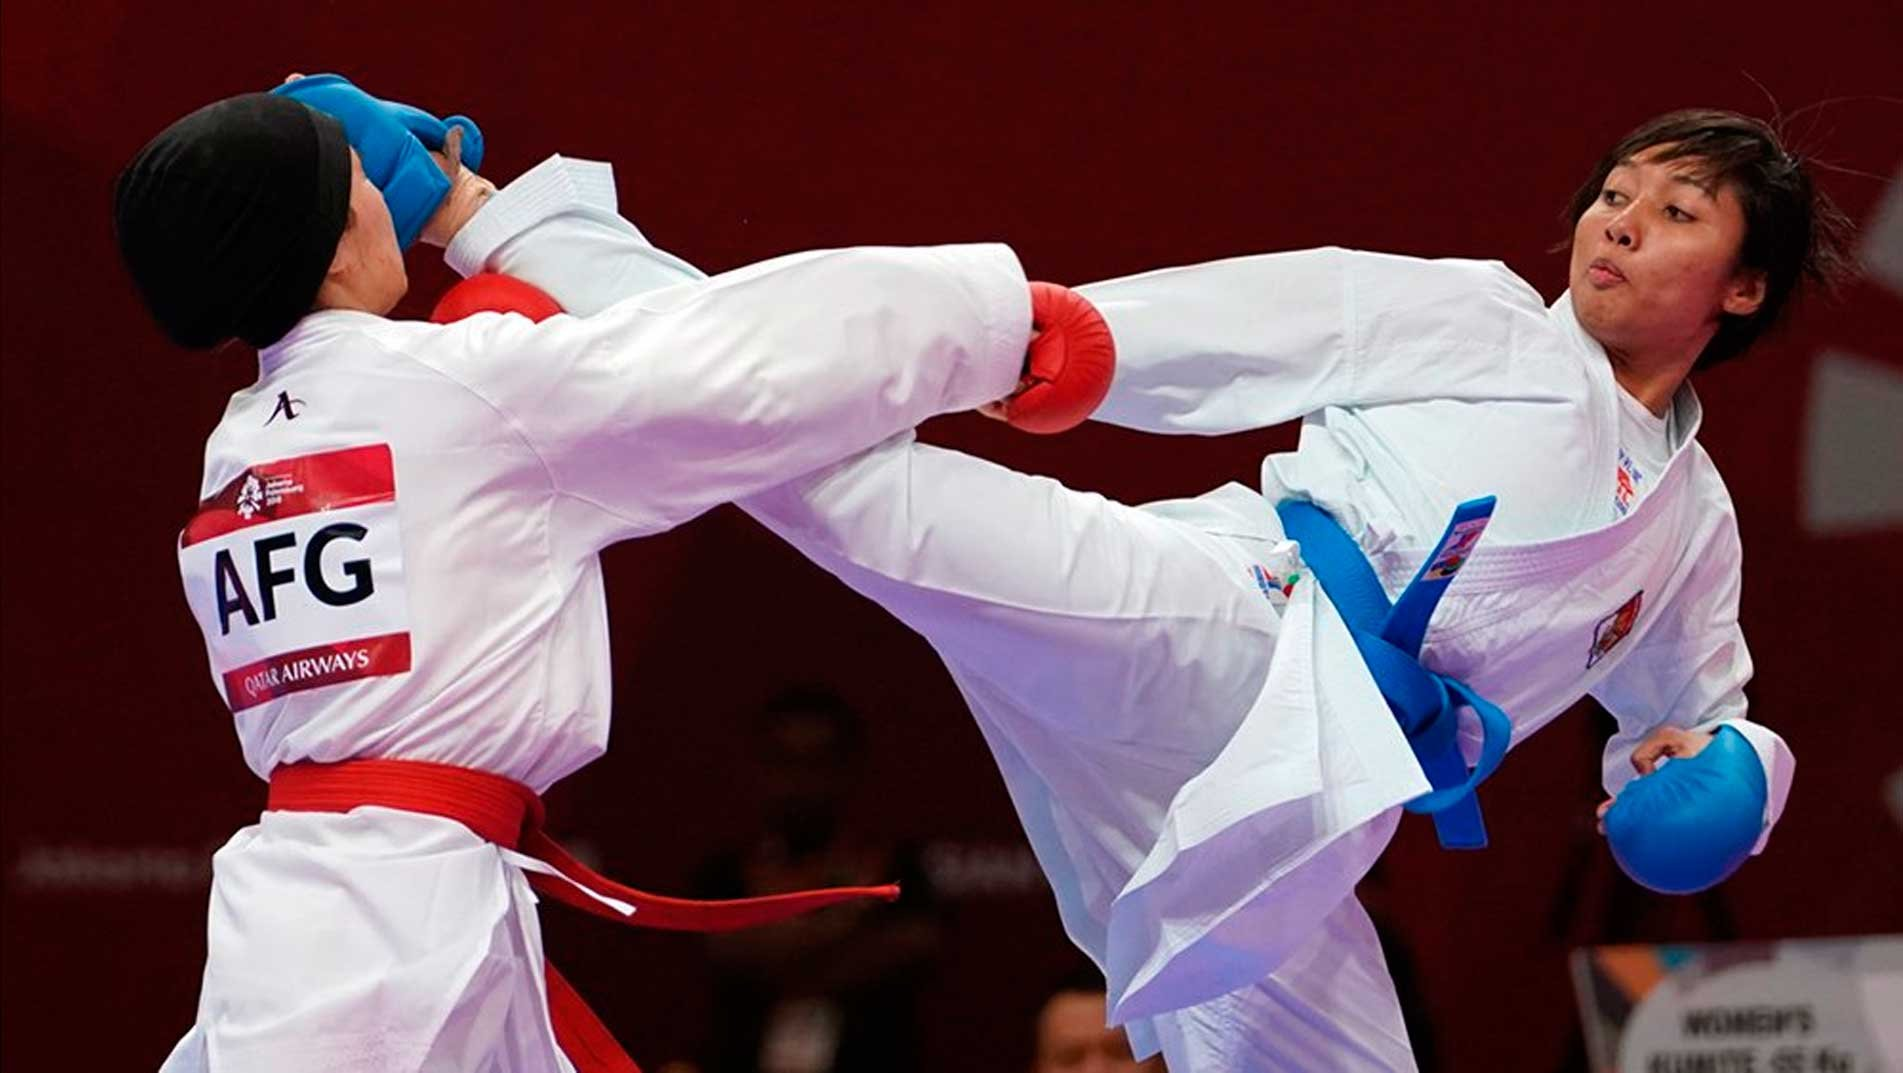 Karate powerhouses take spotlight on day 02 of 2018 Asian Games